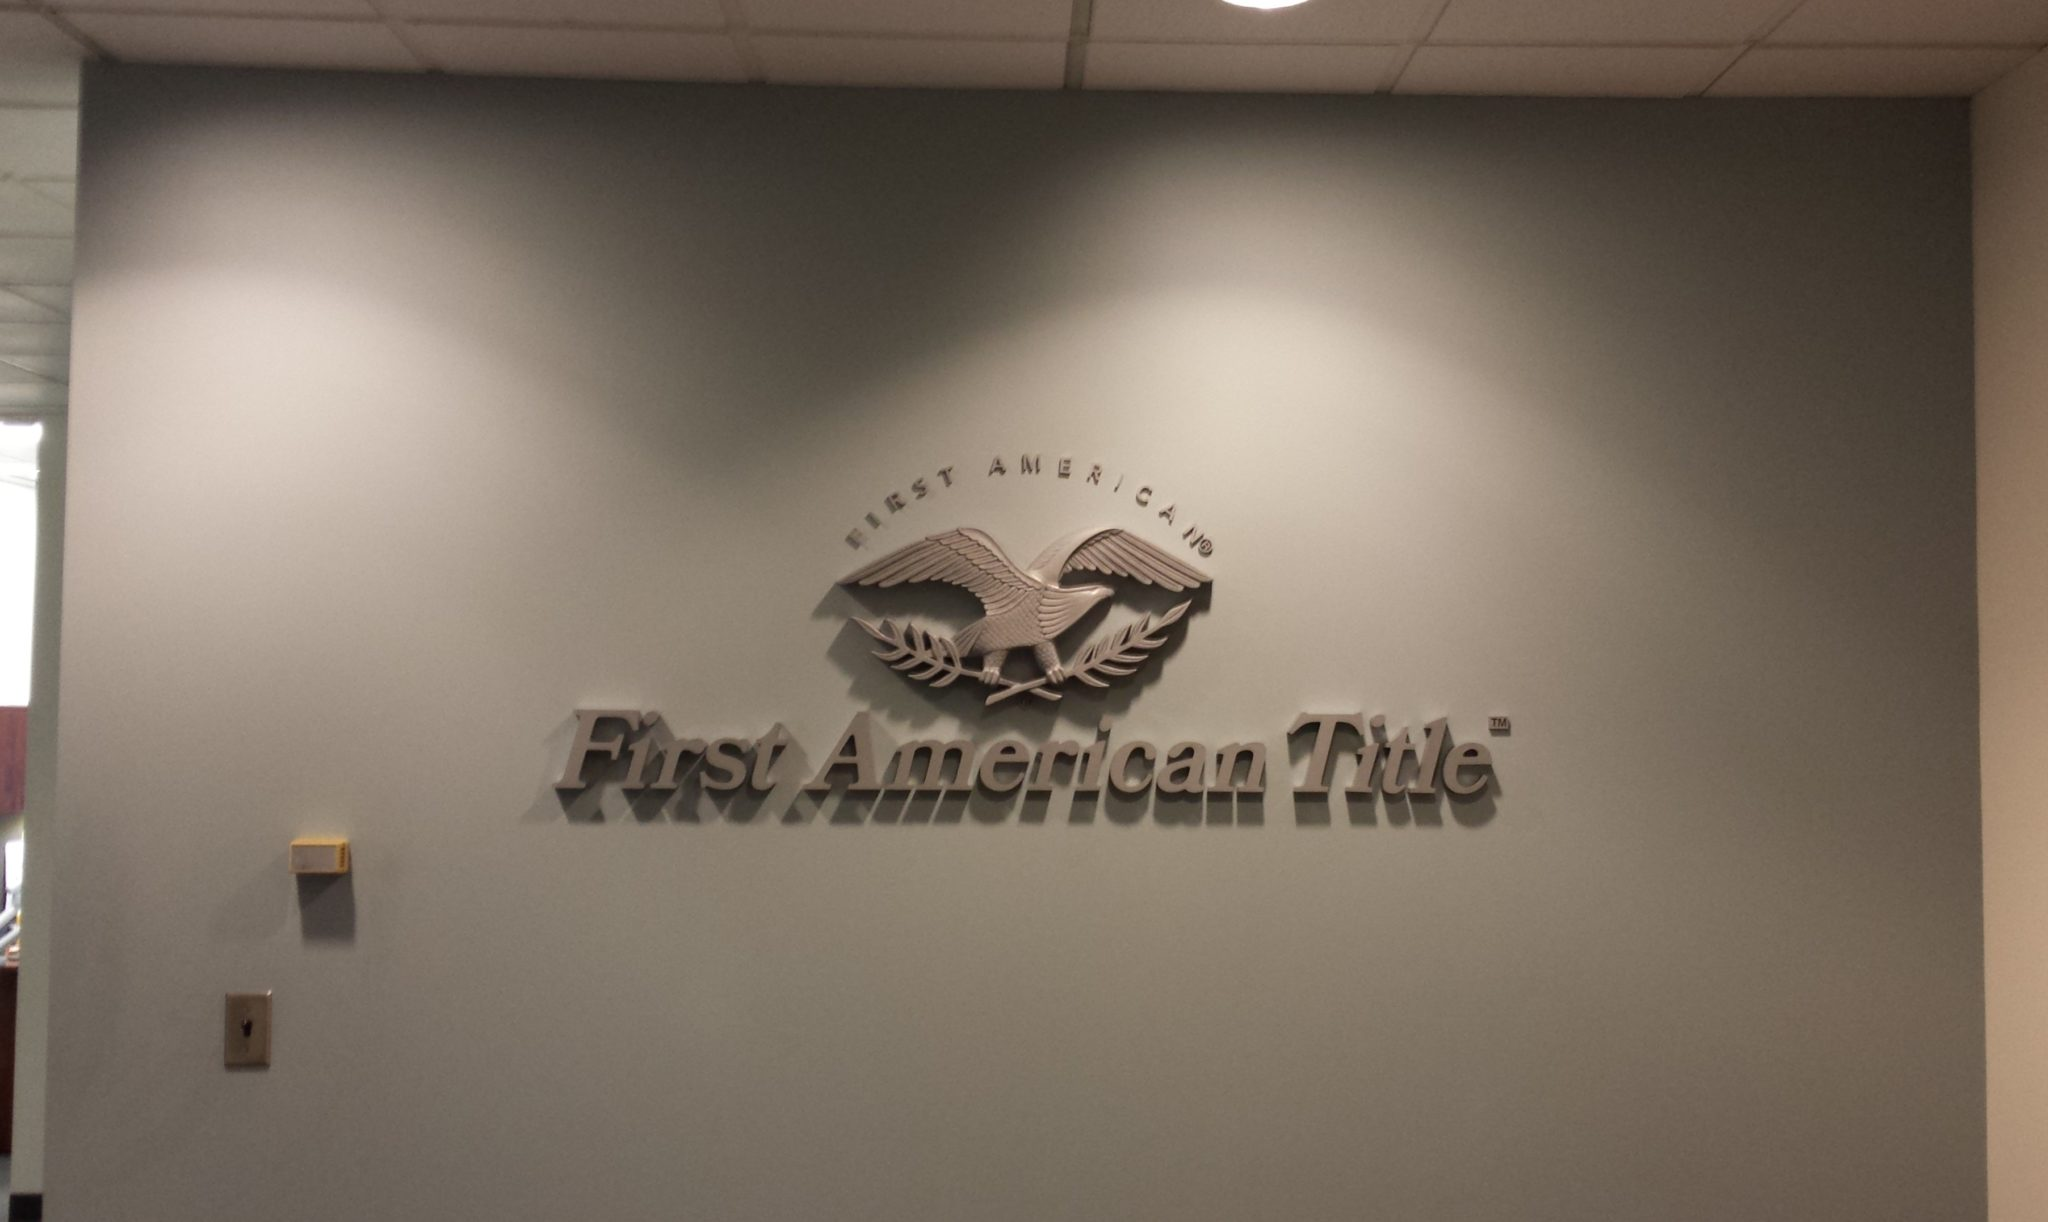 interior feature wall sign for first american title company